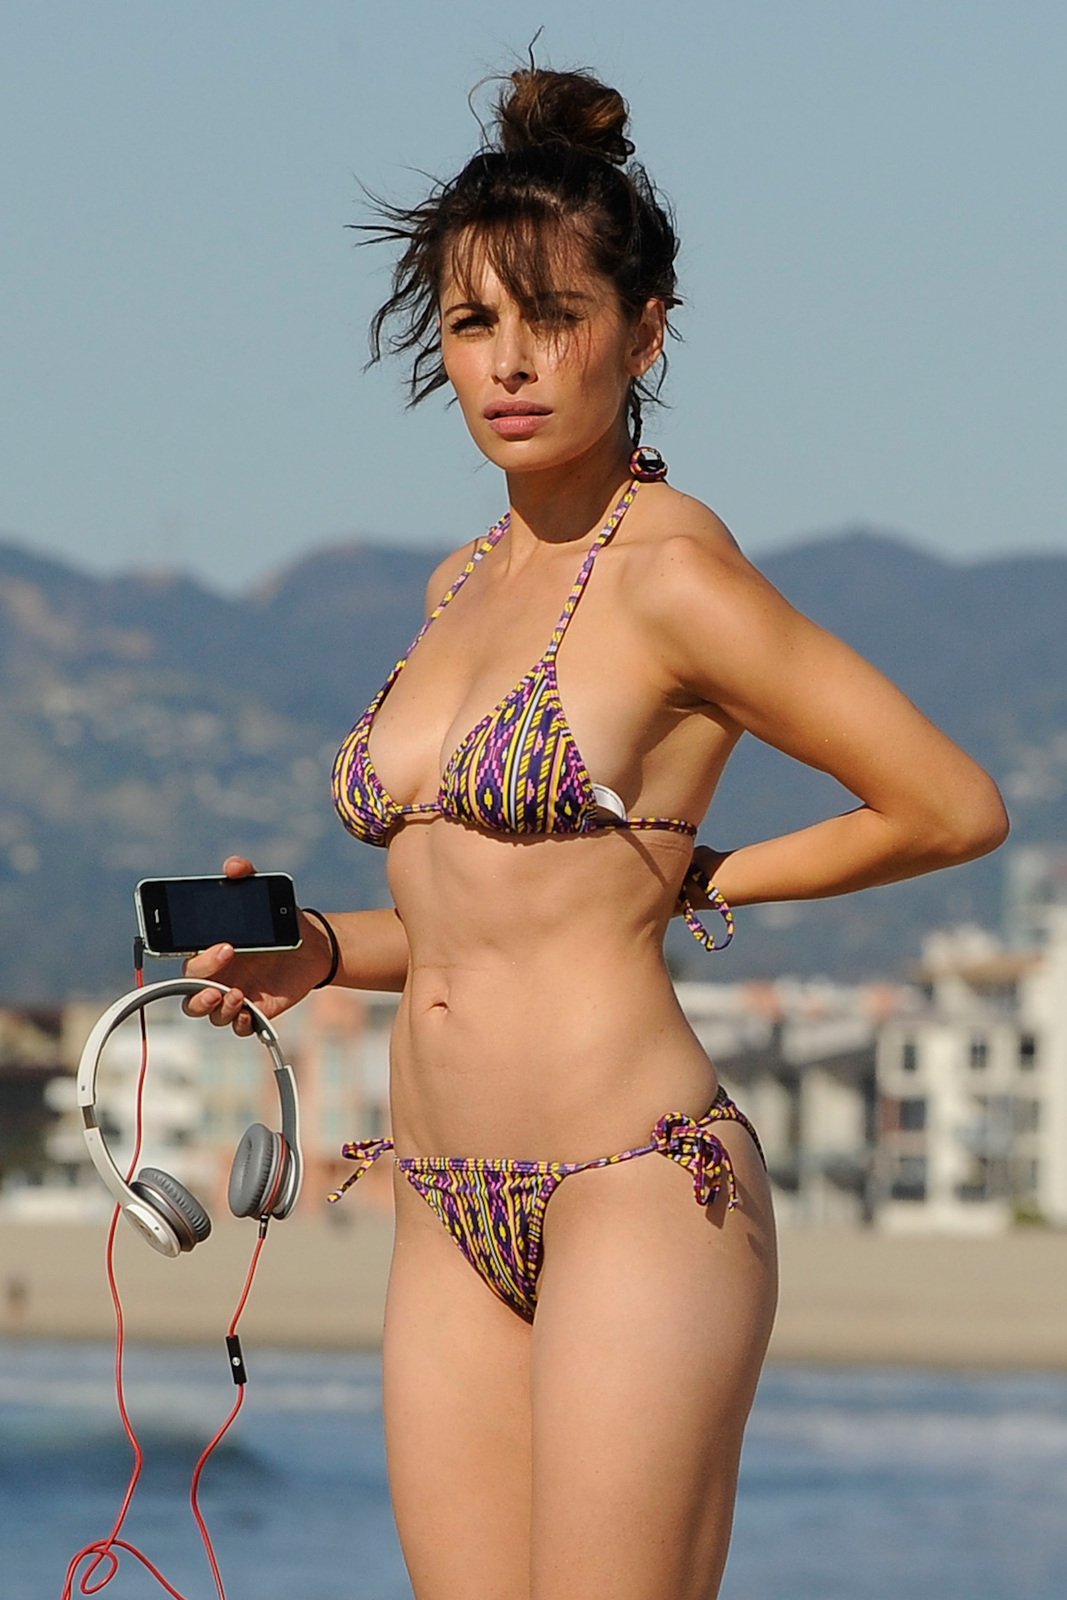 sarah shahi bikini picture on hottest pics for u